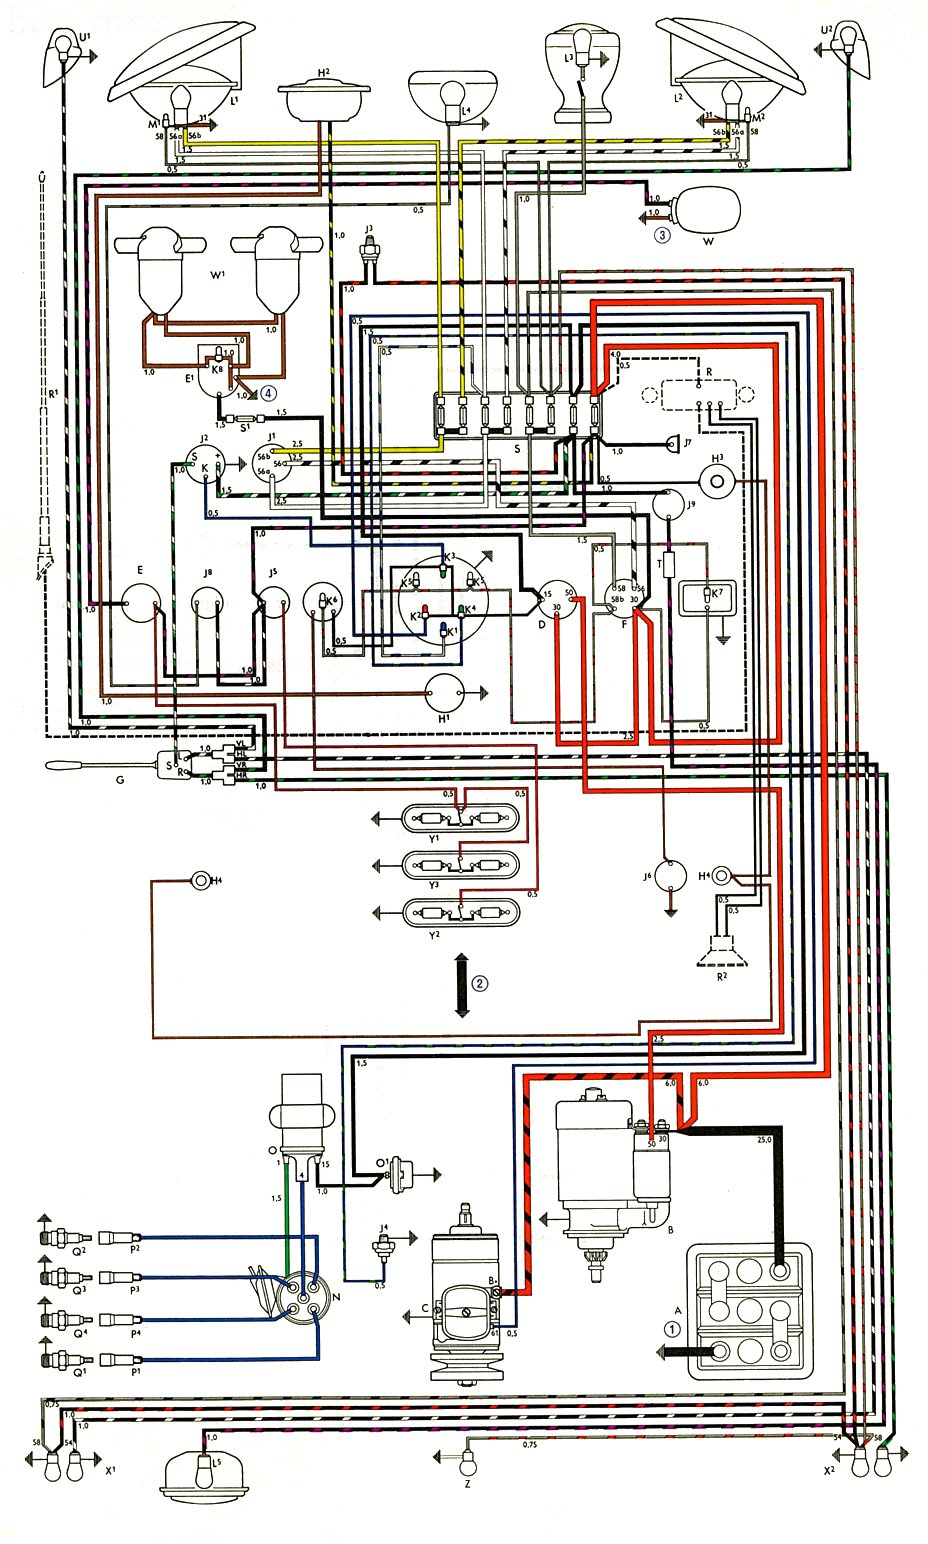 bus_63_non_usa thesamba com type 2 wiring diagrams 1963 corvette wiring diagram at gsmx.co